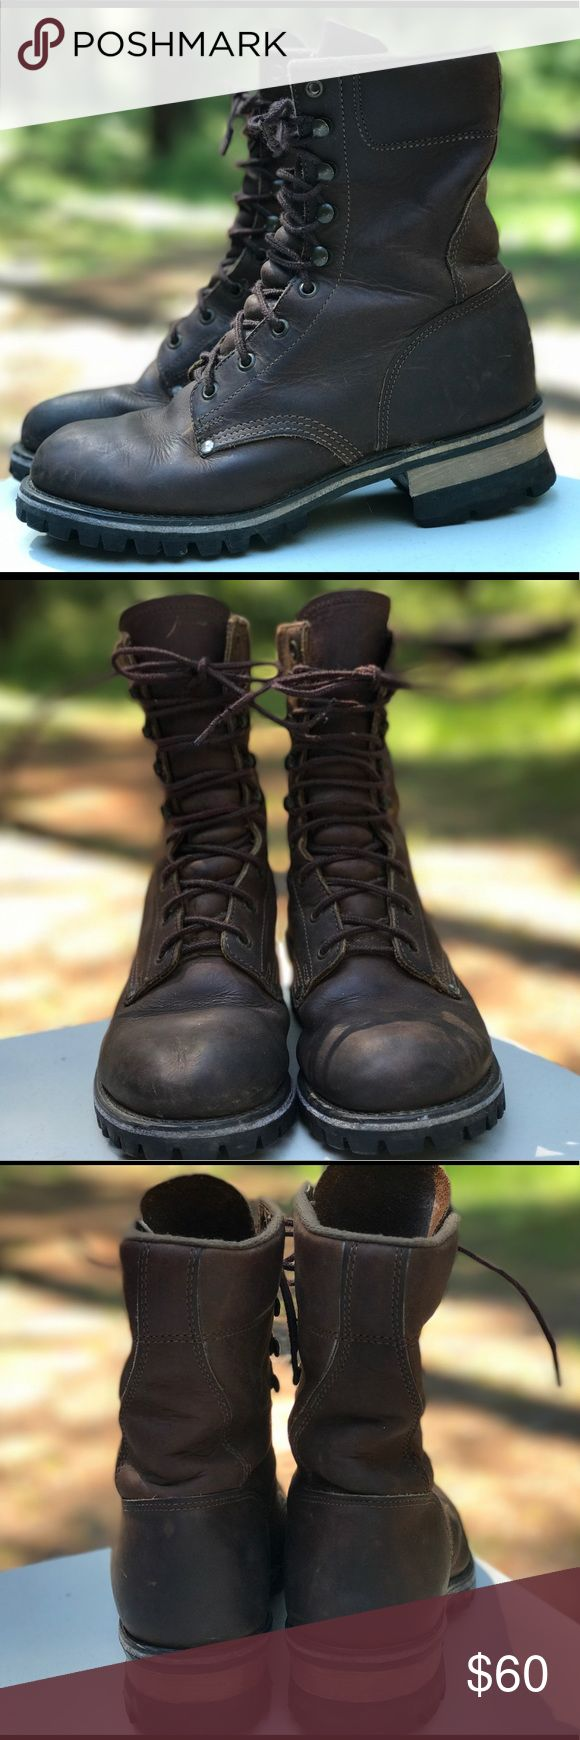 """L.L.Bean or Chippewa logger combat lace up boot 39 Classic 8 inch leather logger work boots w/ Vibram soles. Possibly Chippewa or LL Bean Katahdin Iron Works, labels & markings faded, the only part I can read is """"leather"""" & """"made in USA"""". I really love these boots and hate to part with them but they are just too big for me, I would say they are a size 39 = men's 6.5 or women's 8-8.5 (I wear 38) They are in good used condition & show some wear; see photos (minor spots & scratches, patina…"""